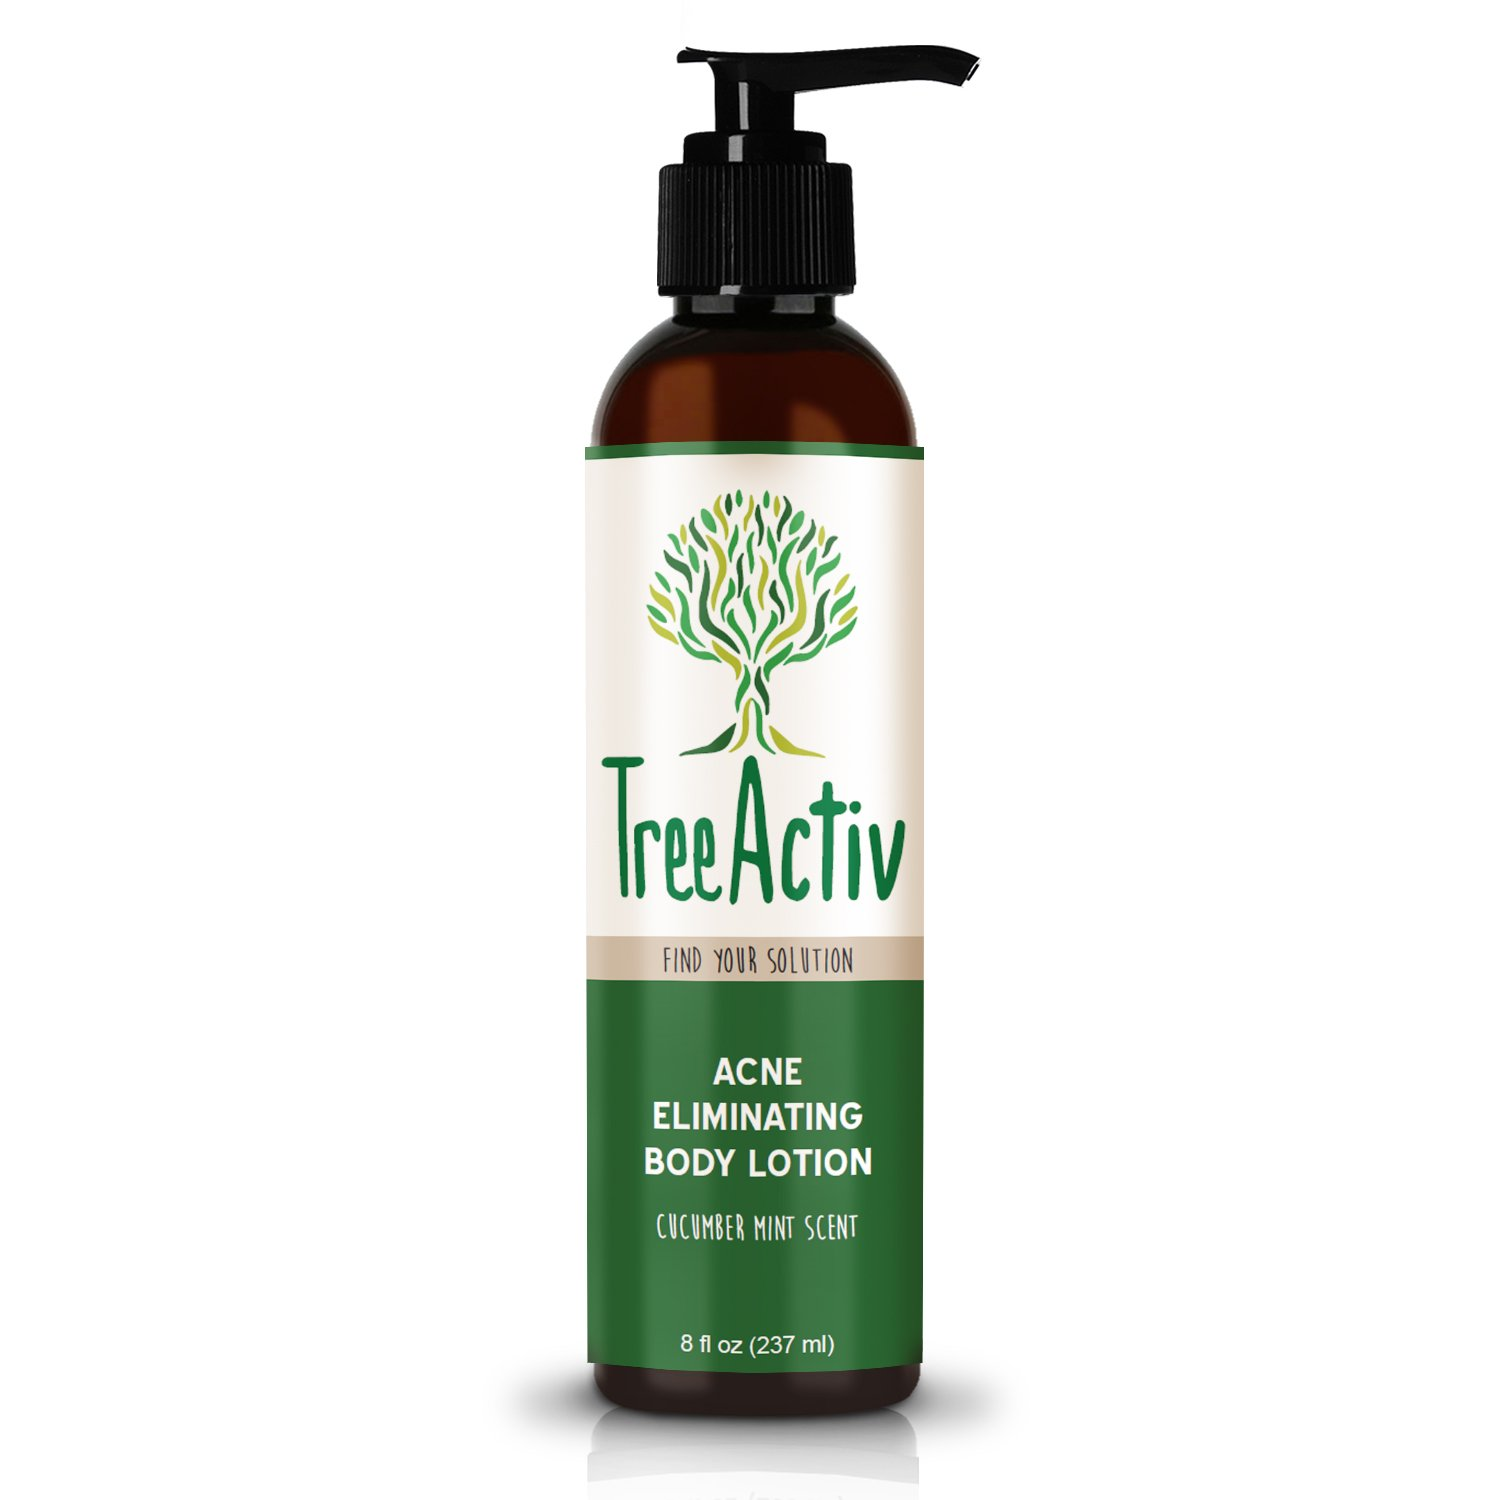 TreeActiv Acne Eliminating Body Lotion